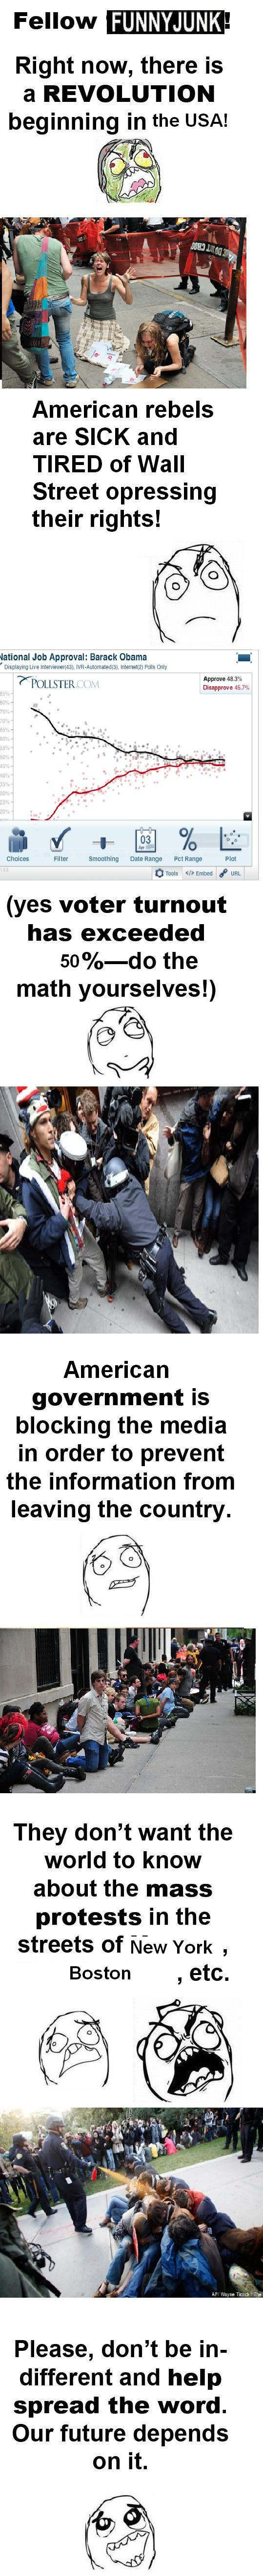 A hand to the USA? (Read Description). This: Was posted a few hours ago. In the pic, OP claims that Russia is experiencing a serious revolution and that the gov